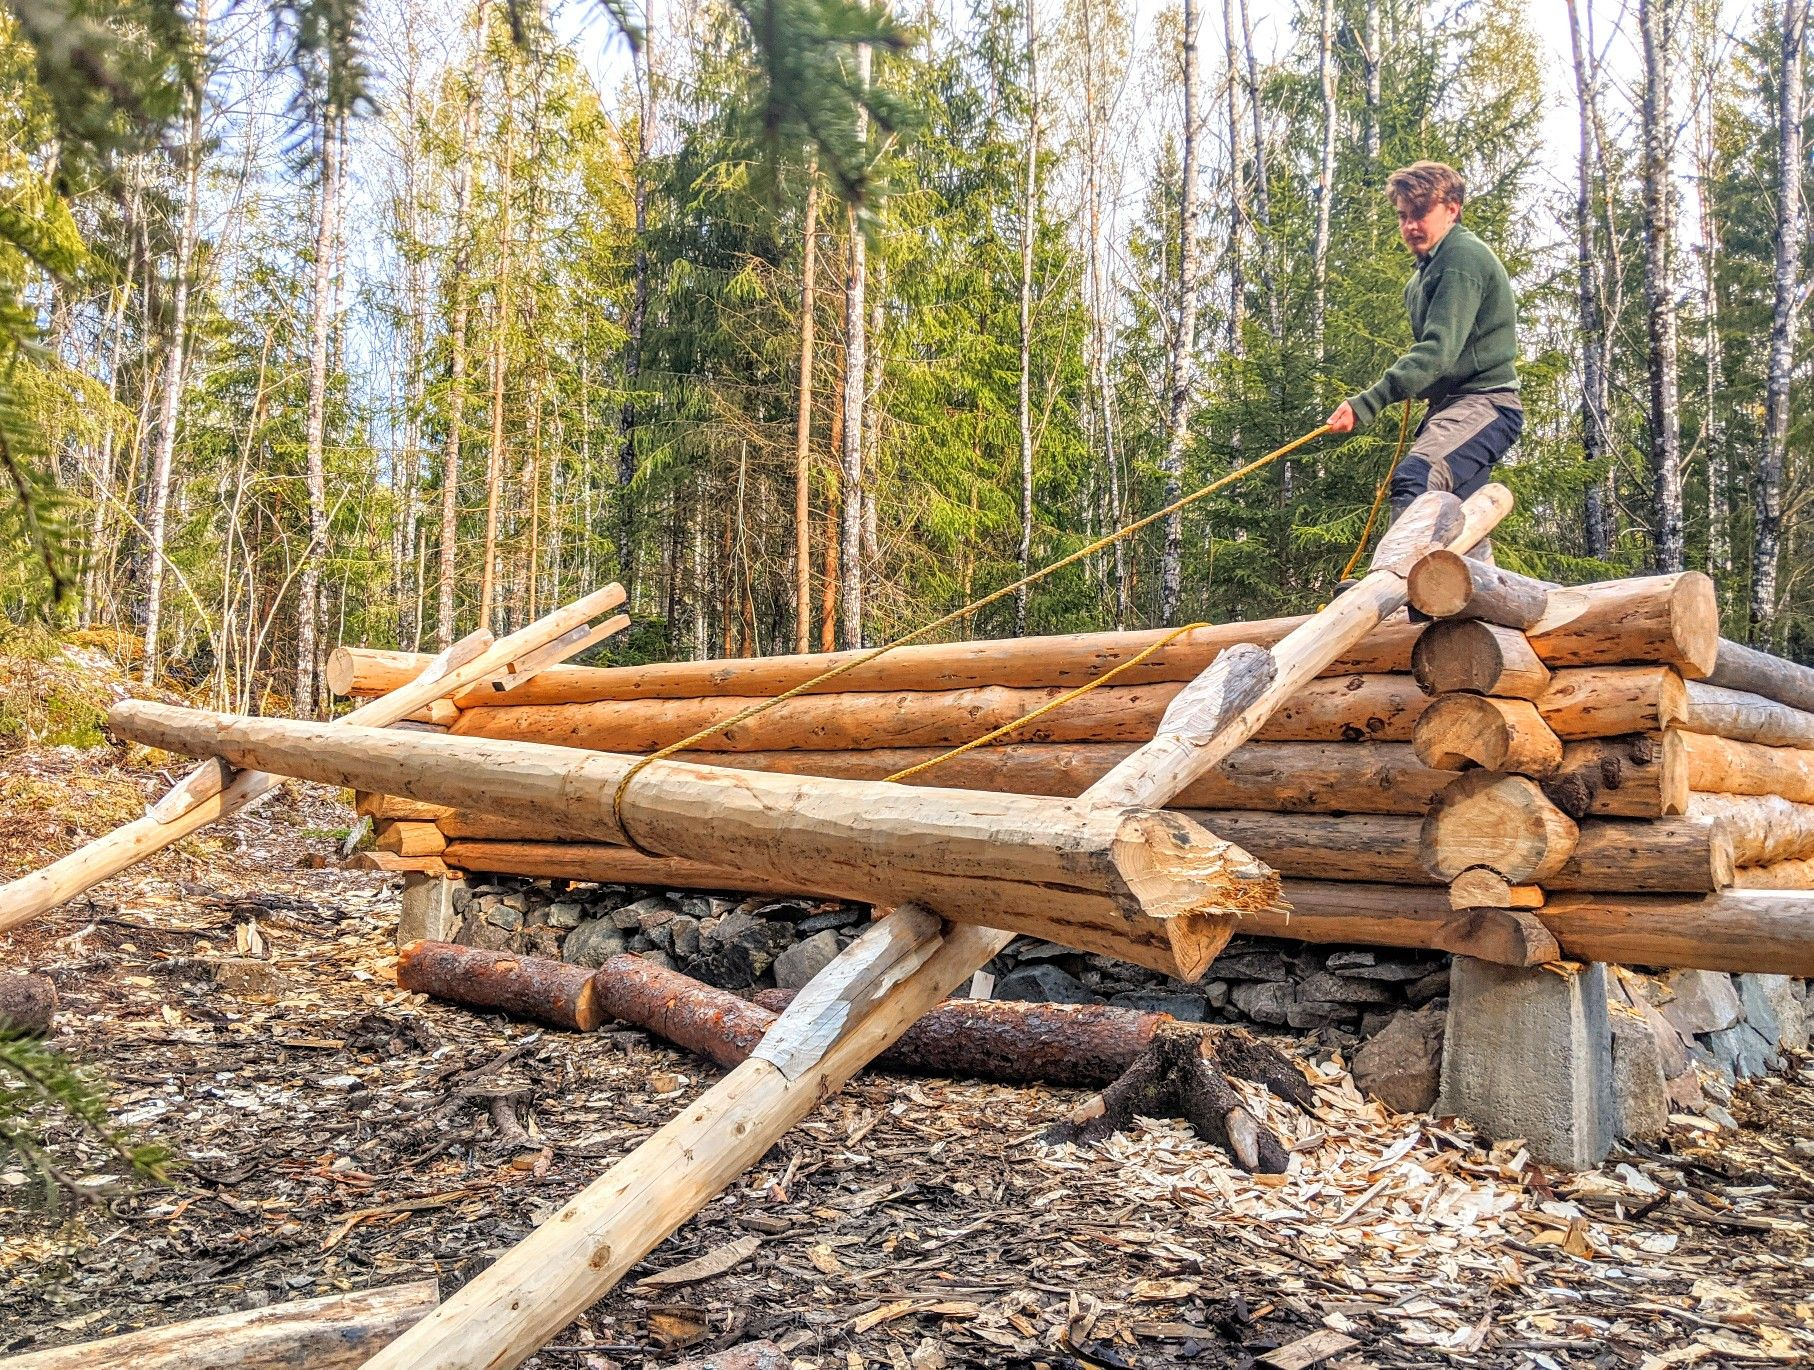 How to lift heavy logs onto log cabin by yourself using